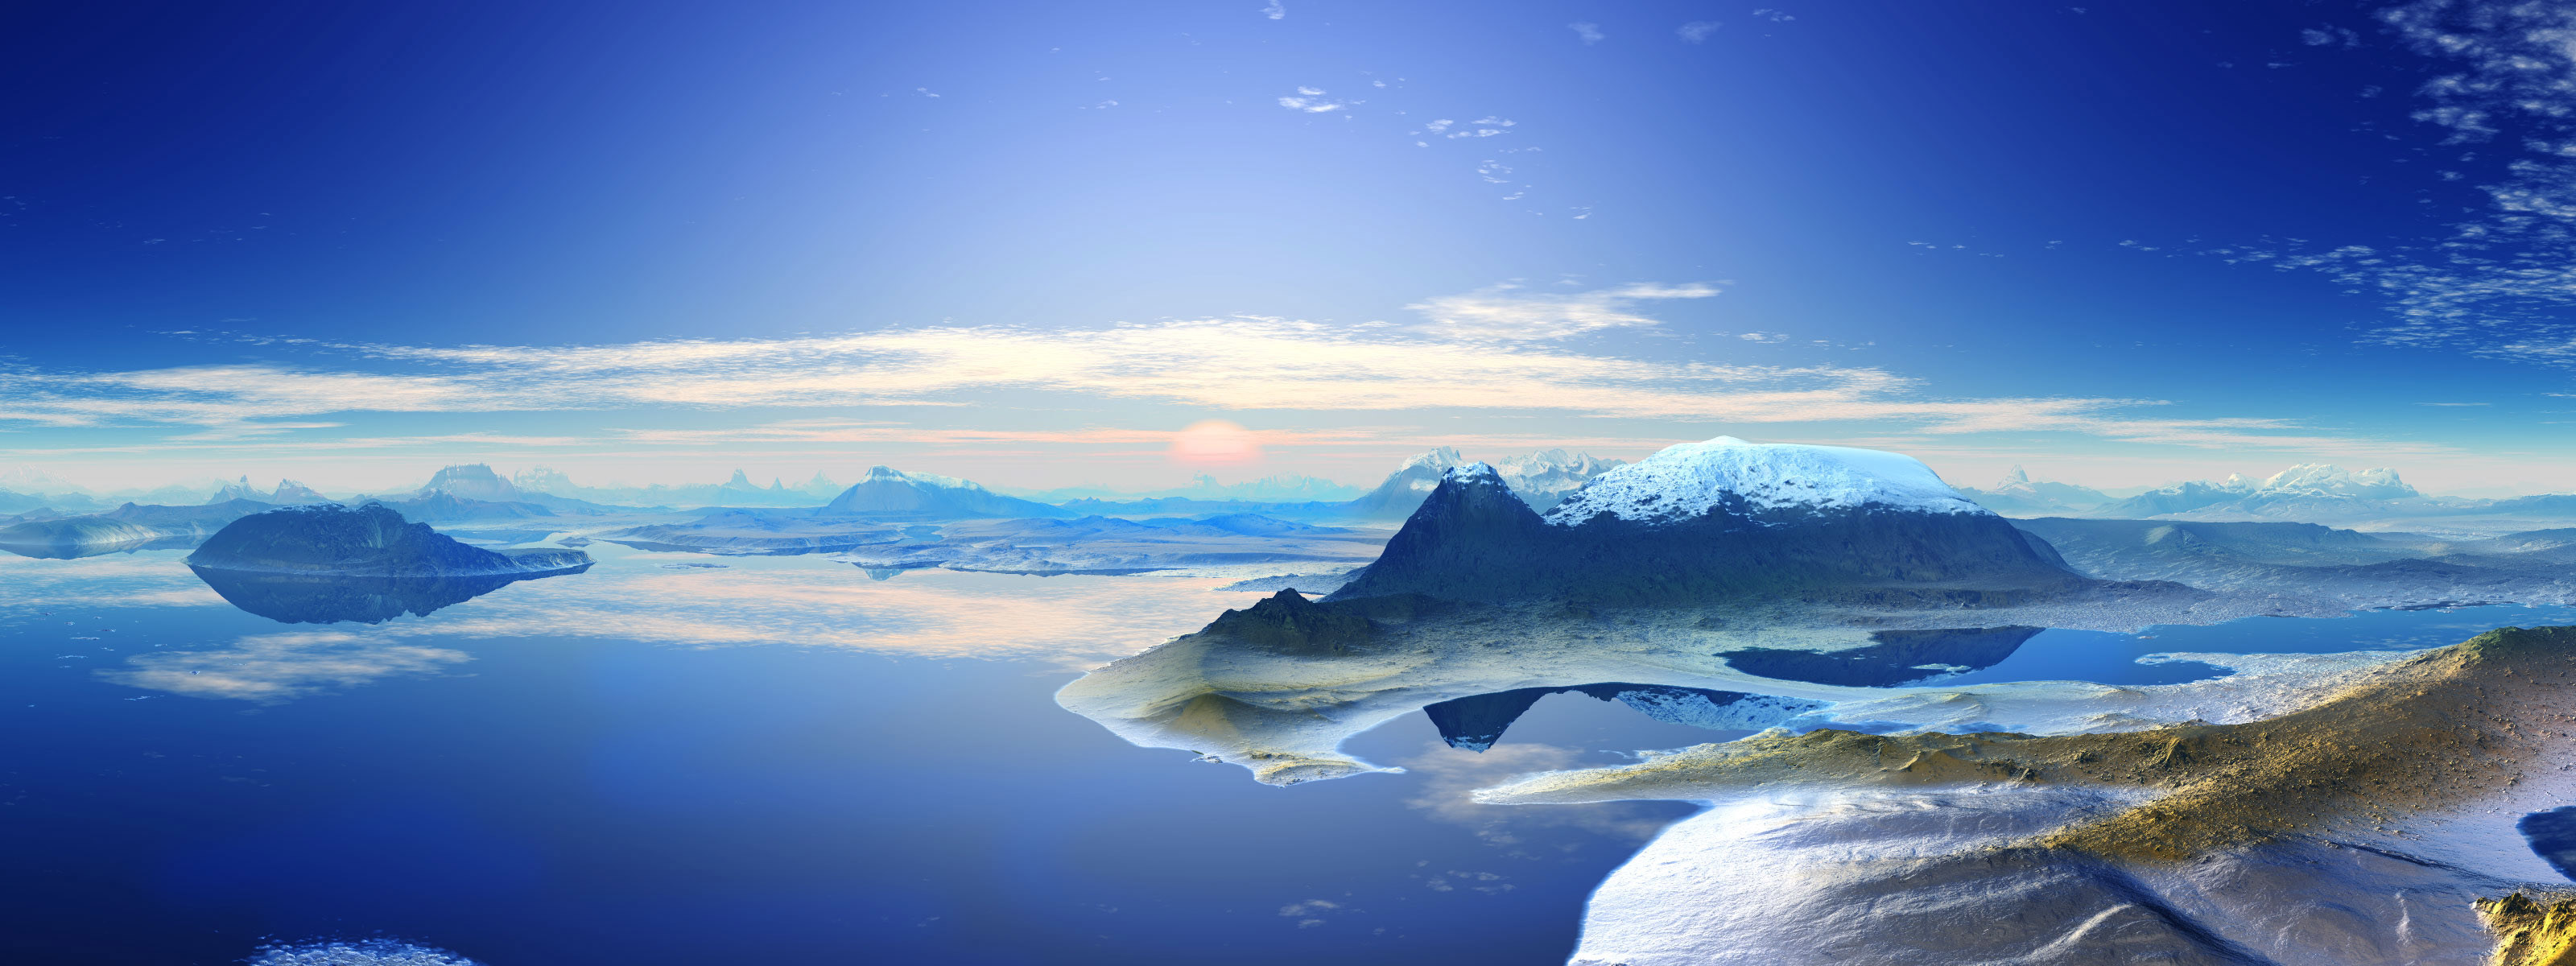 3D Panoramic Landscape Wallpapers | HD Wallpapers